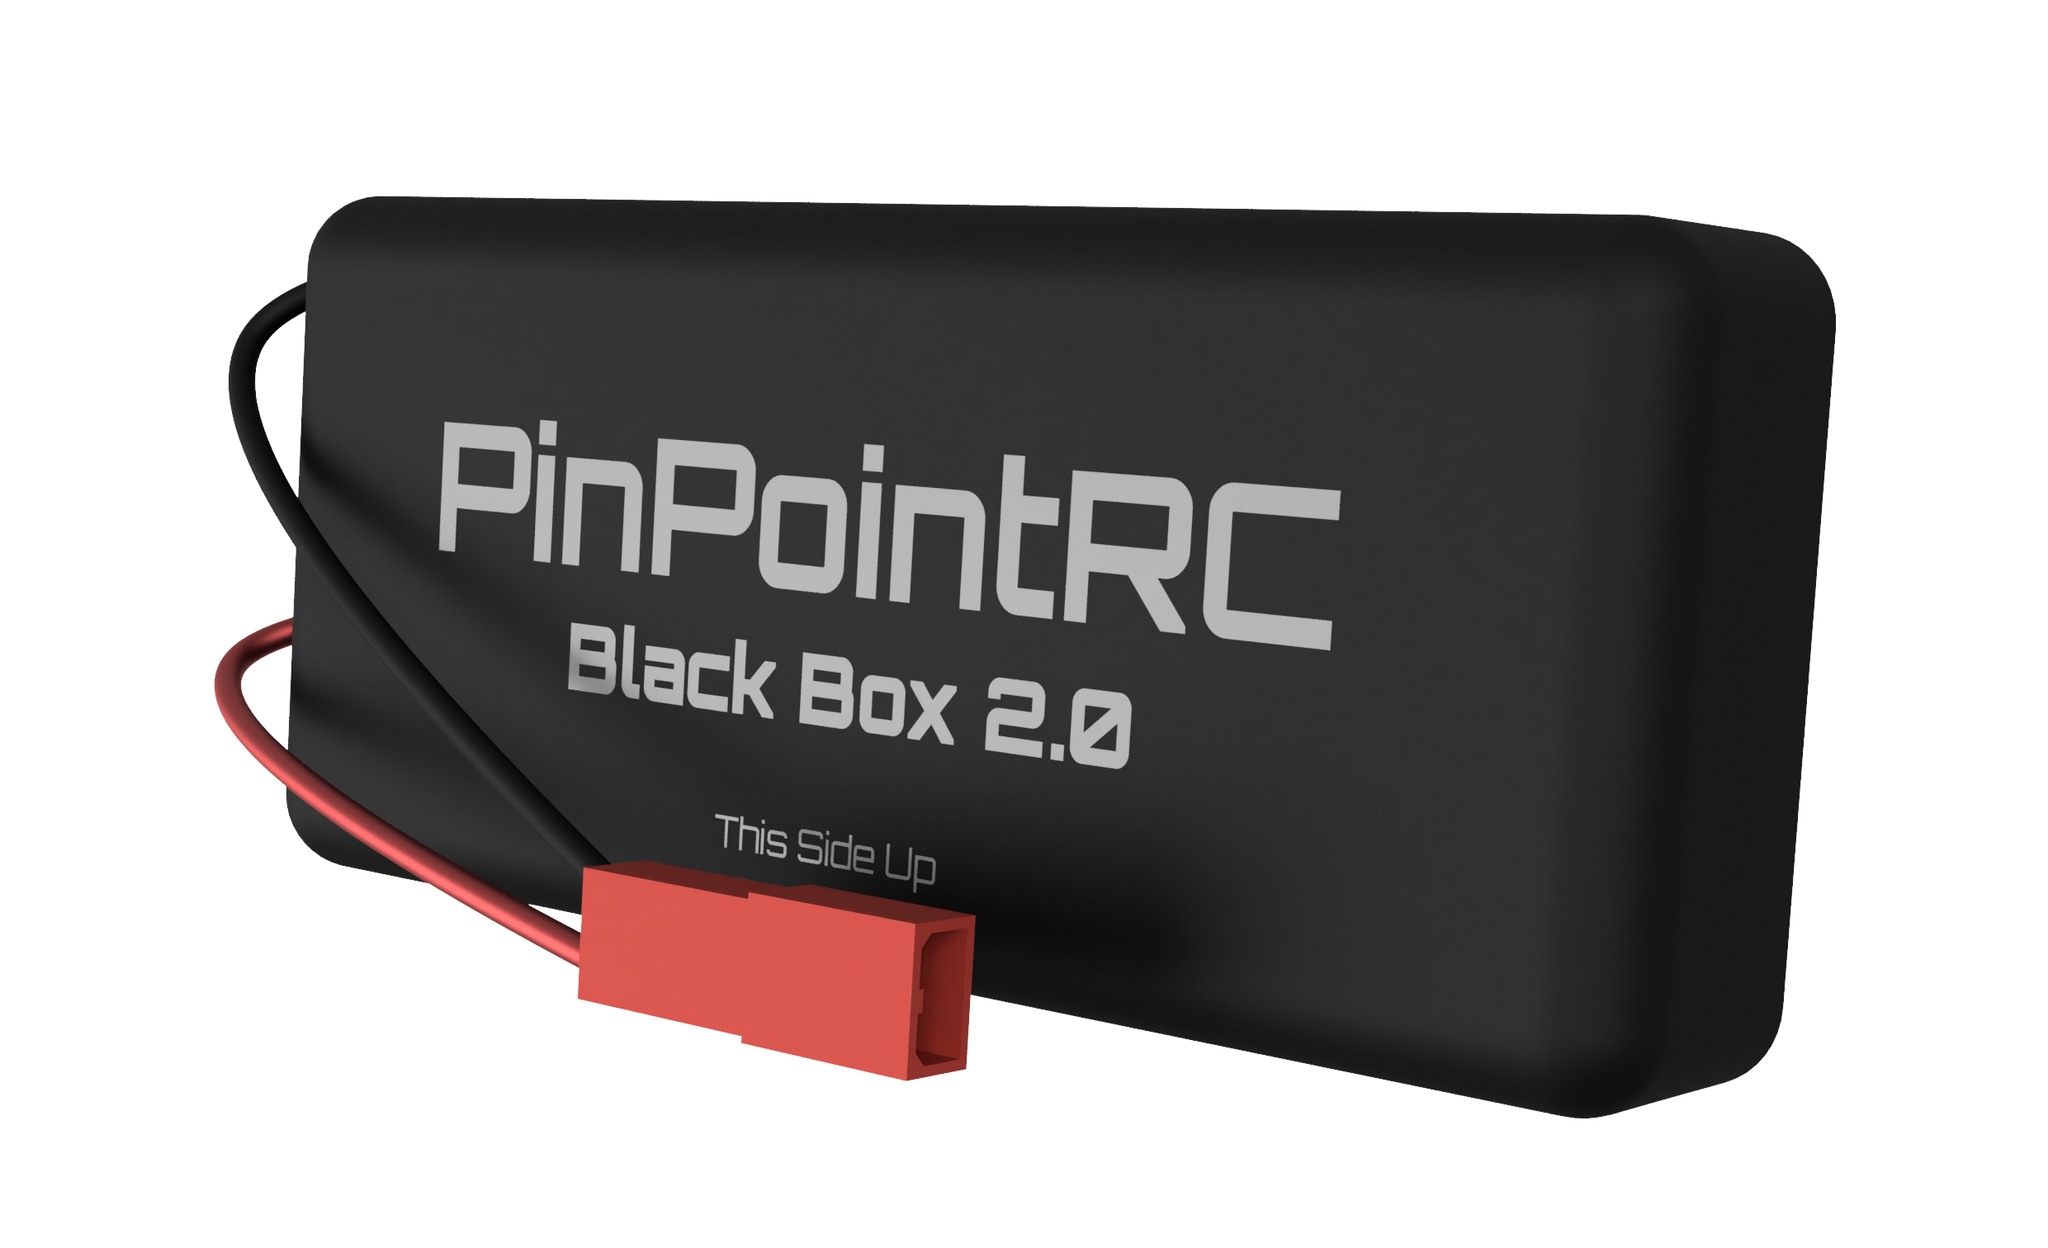 Black Box 2.0 by PinPointRC. Motorcycle tracker, electric bike tracker.